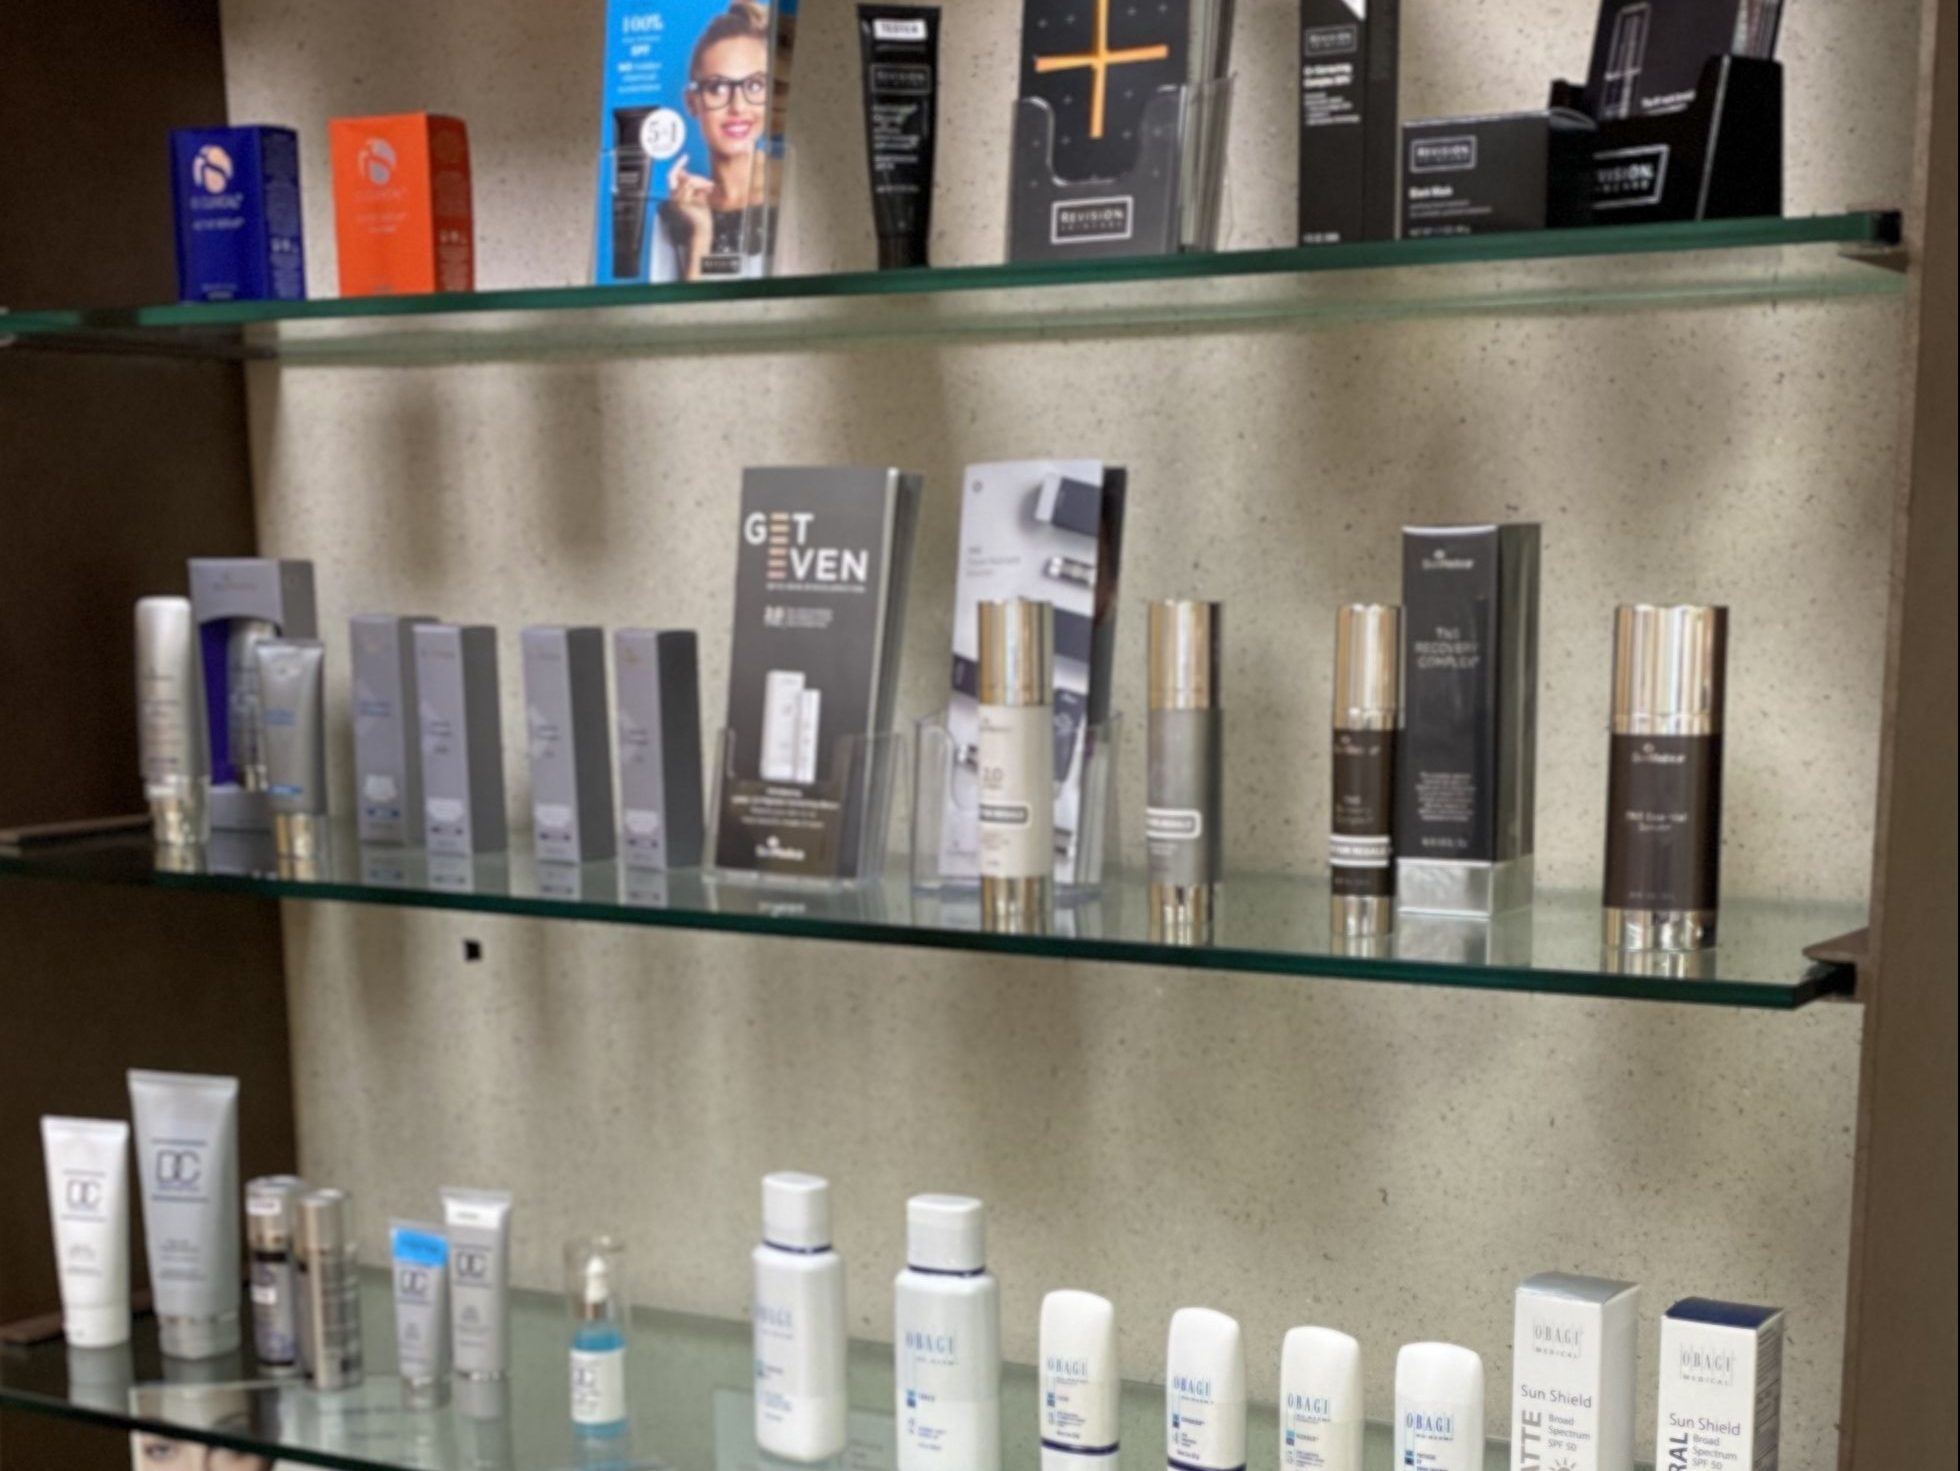 craig r dufresne md facs skincare products display